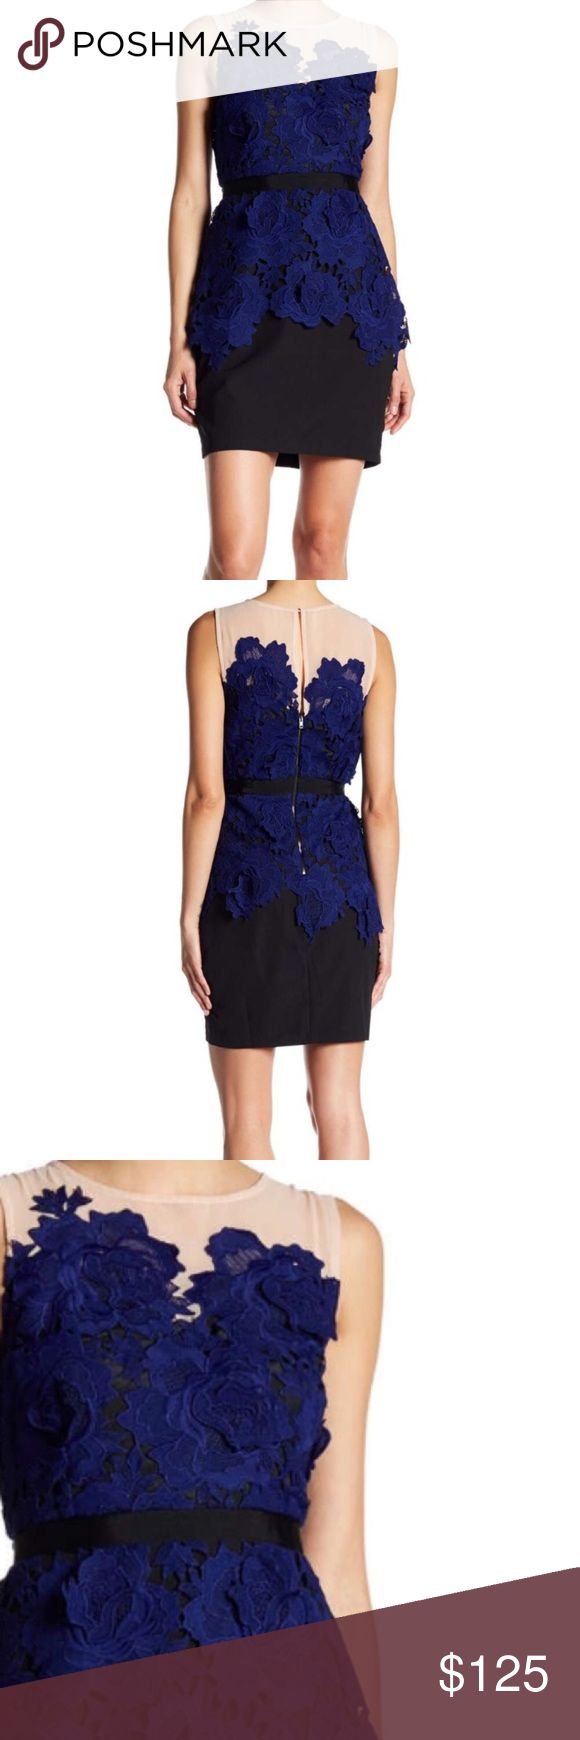 """Adelyn Rae Floral Lace Sheath Dress New With Tags- Classy sheath dress with crew neck, nude sheer yoke, back button and exposed zip closure with keyhole, floral lace detail in blue, black banded waist, flattering silhouette and semi lining. A must have! 100% Polyester. Bust 37""""-38"""", Waist 31"""", Length 35"""". Adelyn Rae Dresses Mini"""